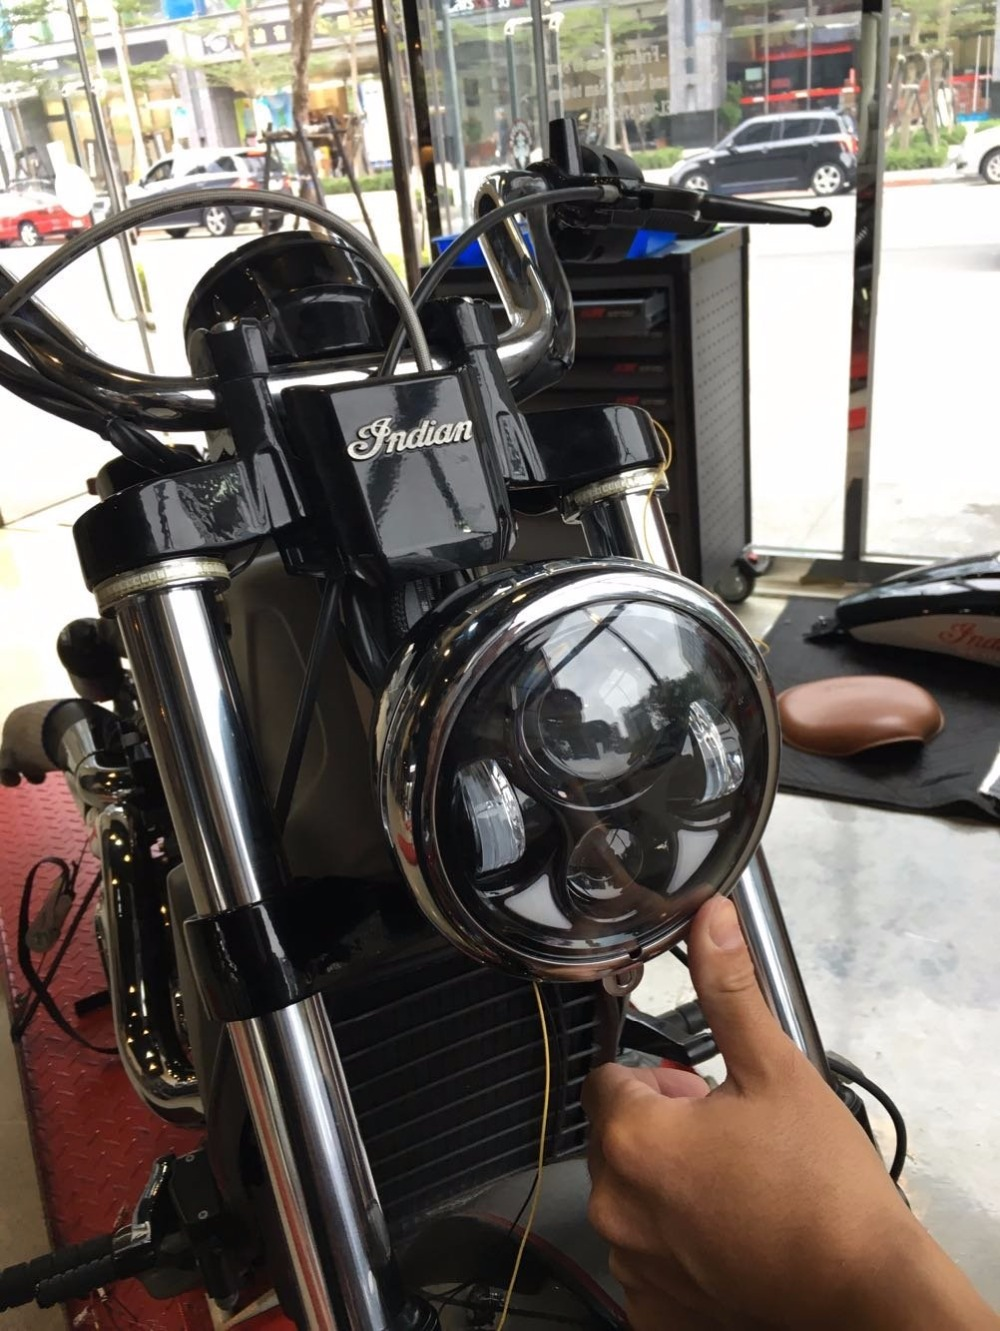 On sale Accessories 5.75 headlight motorcycle 5 3/4 led headlight 5-3/4 Motorcycle Black Projector Daymaker for Harley on sale motos accessories 5 75 headlight motorcycle 5 3 4 led headlight for harley motorcycle projector daymaker